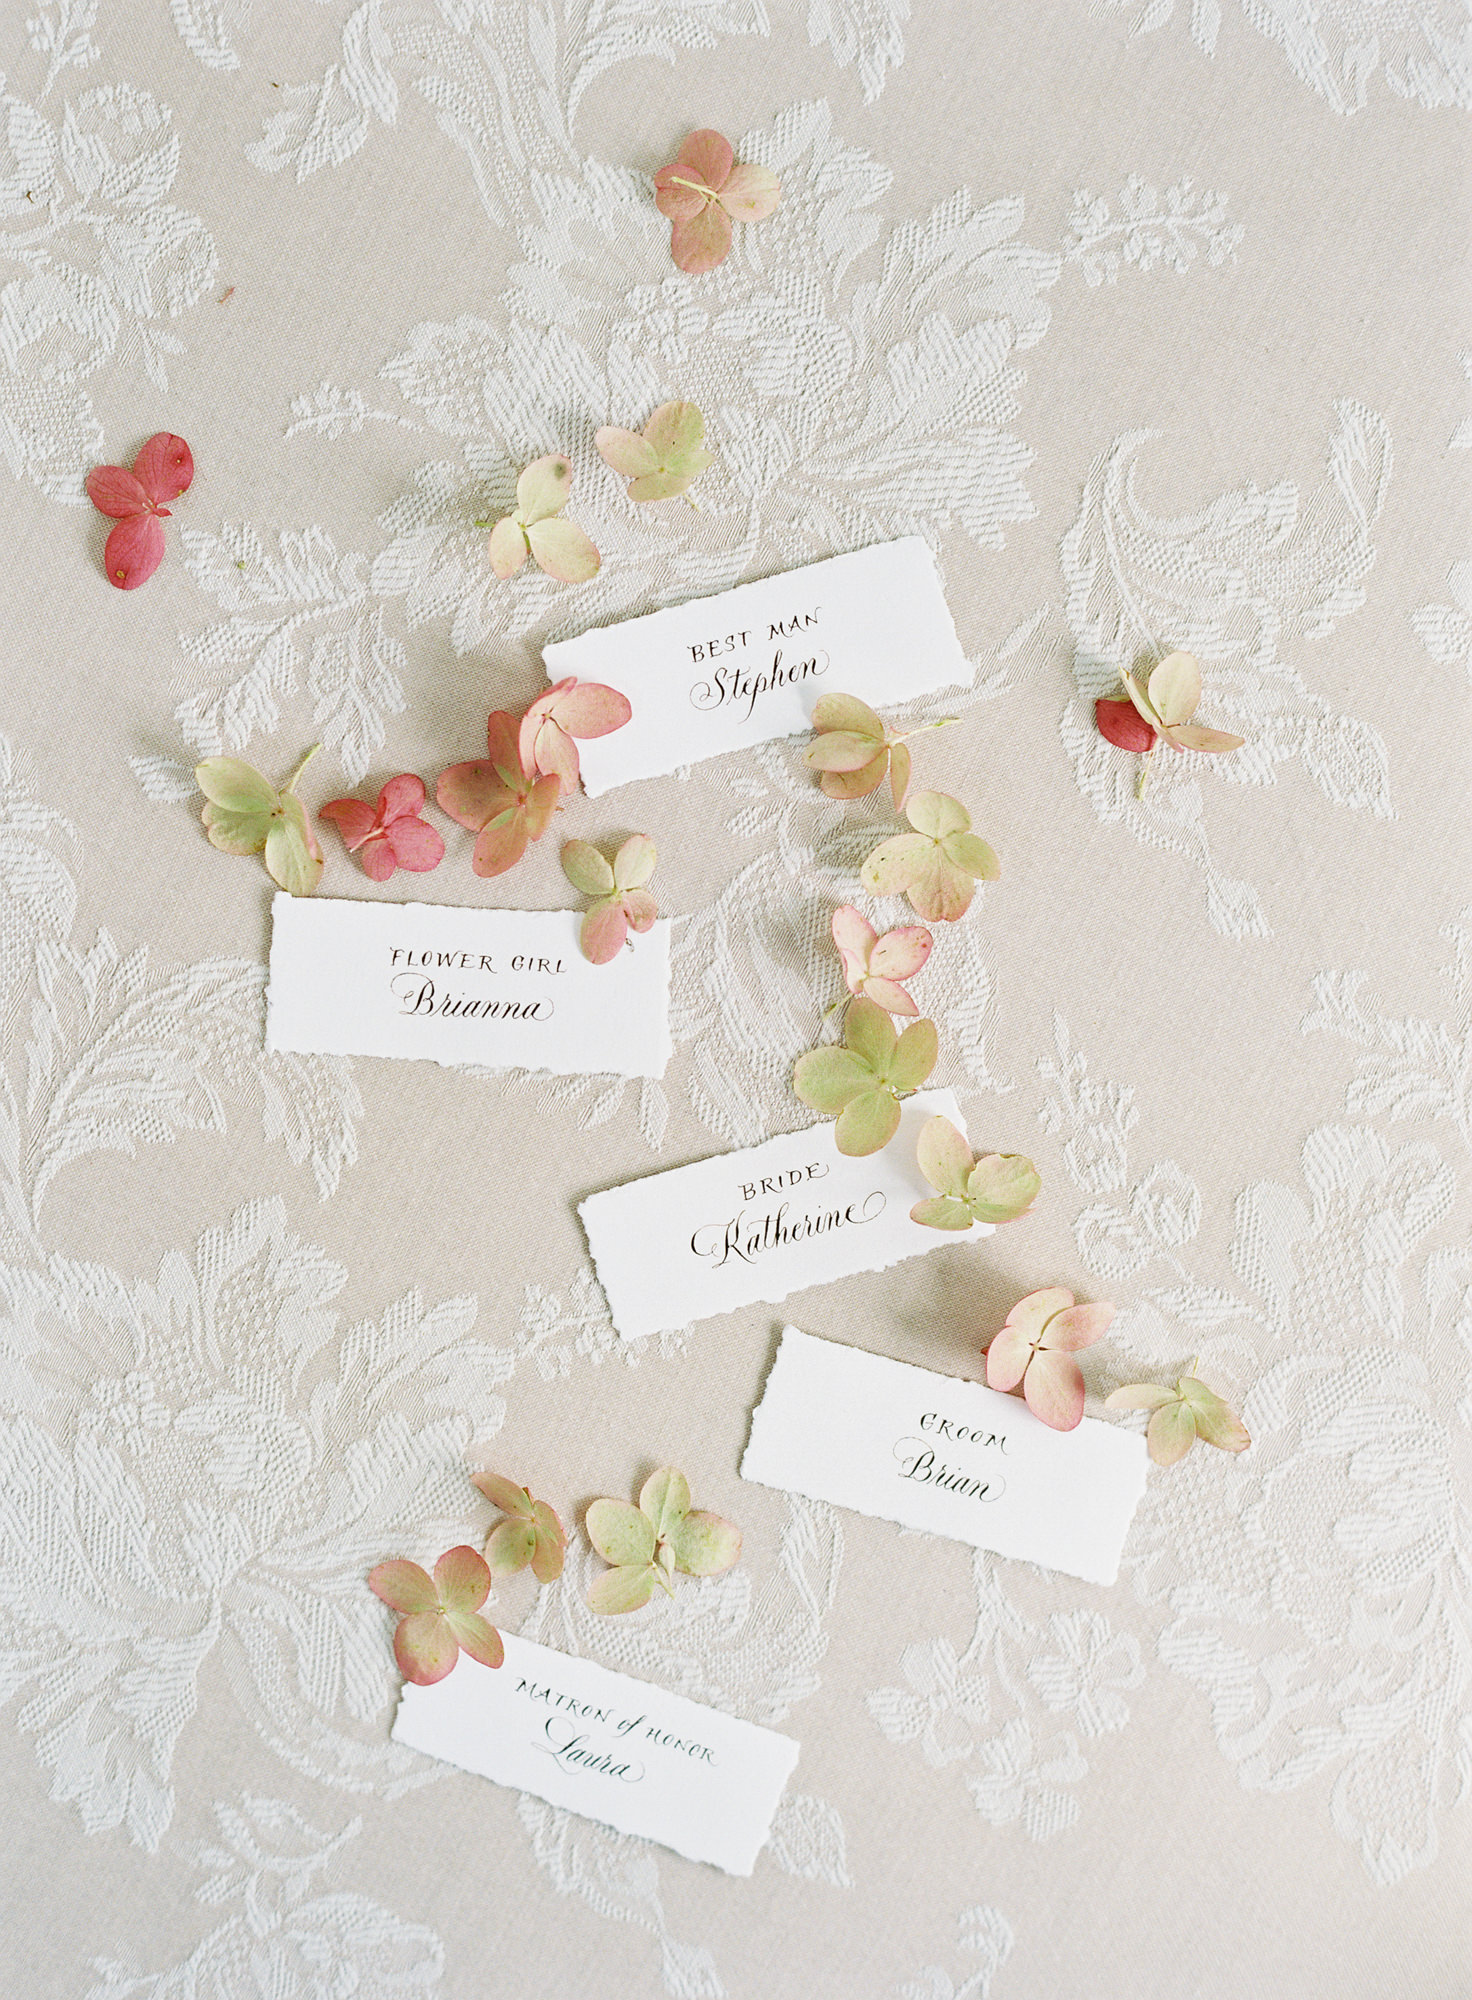 Wedding guest place cards with Hydrangea accents Jen Huang Los Angeles wedding photographer